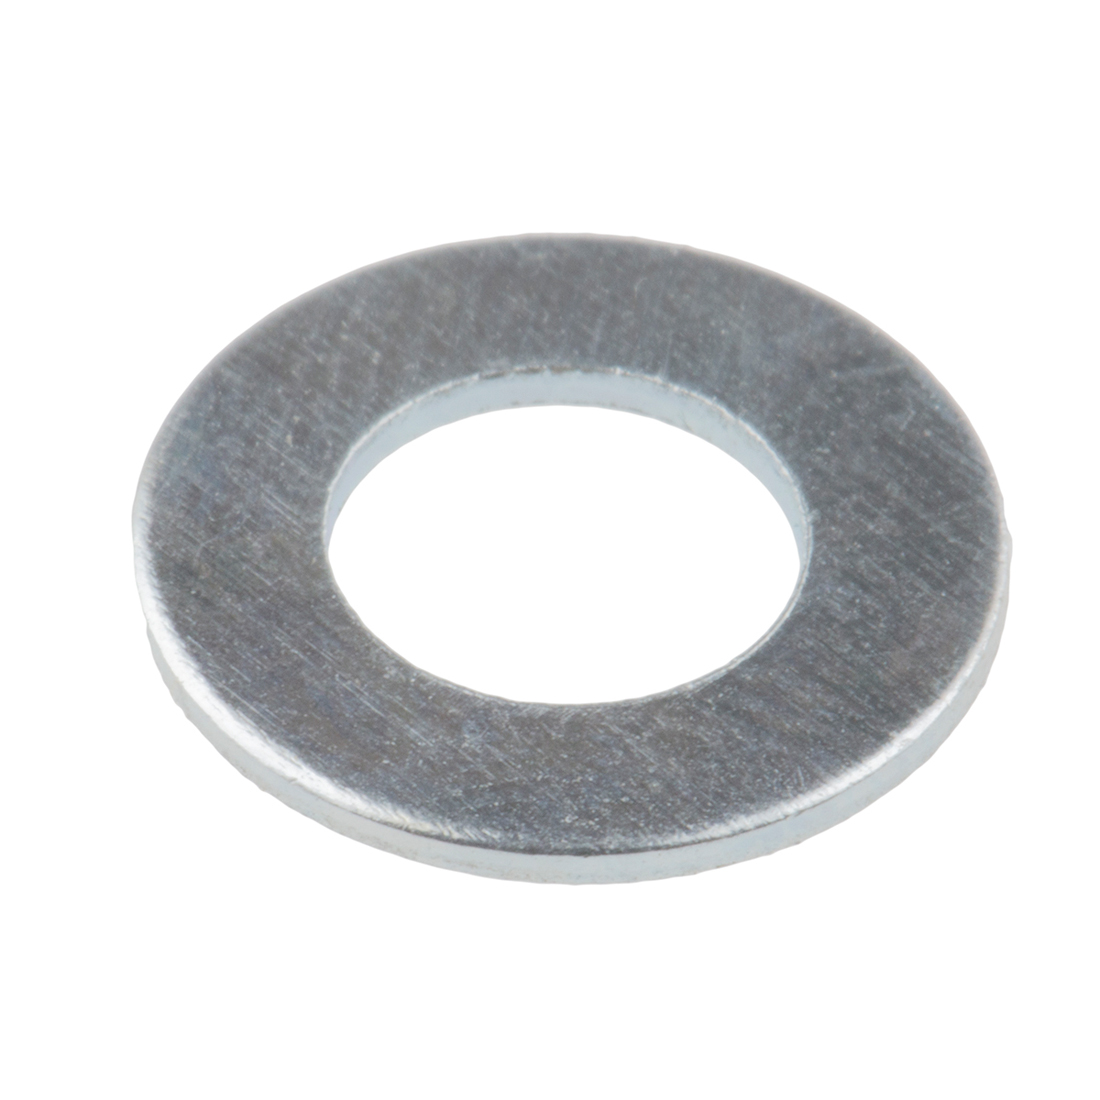 Bright Zinc Plated Steel Plain Washer, 0.9mm Thickness, M6 (Form B) - 100 Pack